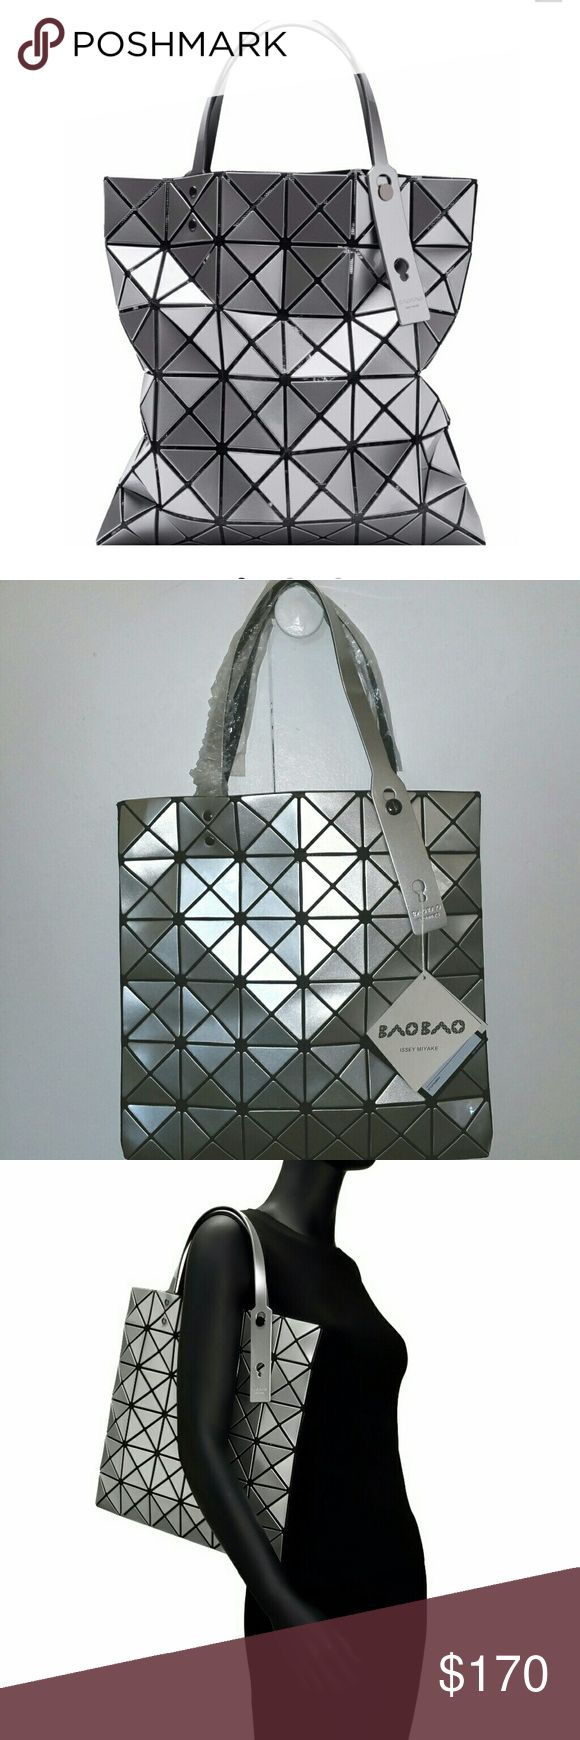 Lucent Bao Bao silver basic tote bag New without tags Bags Totes